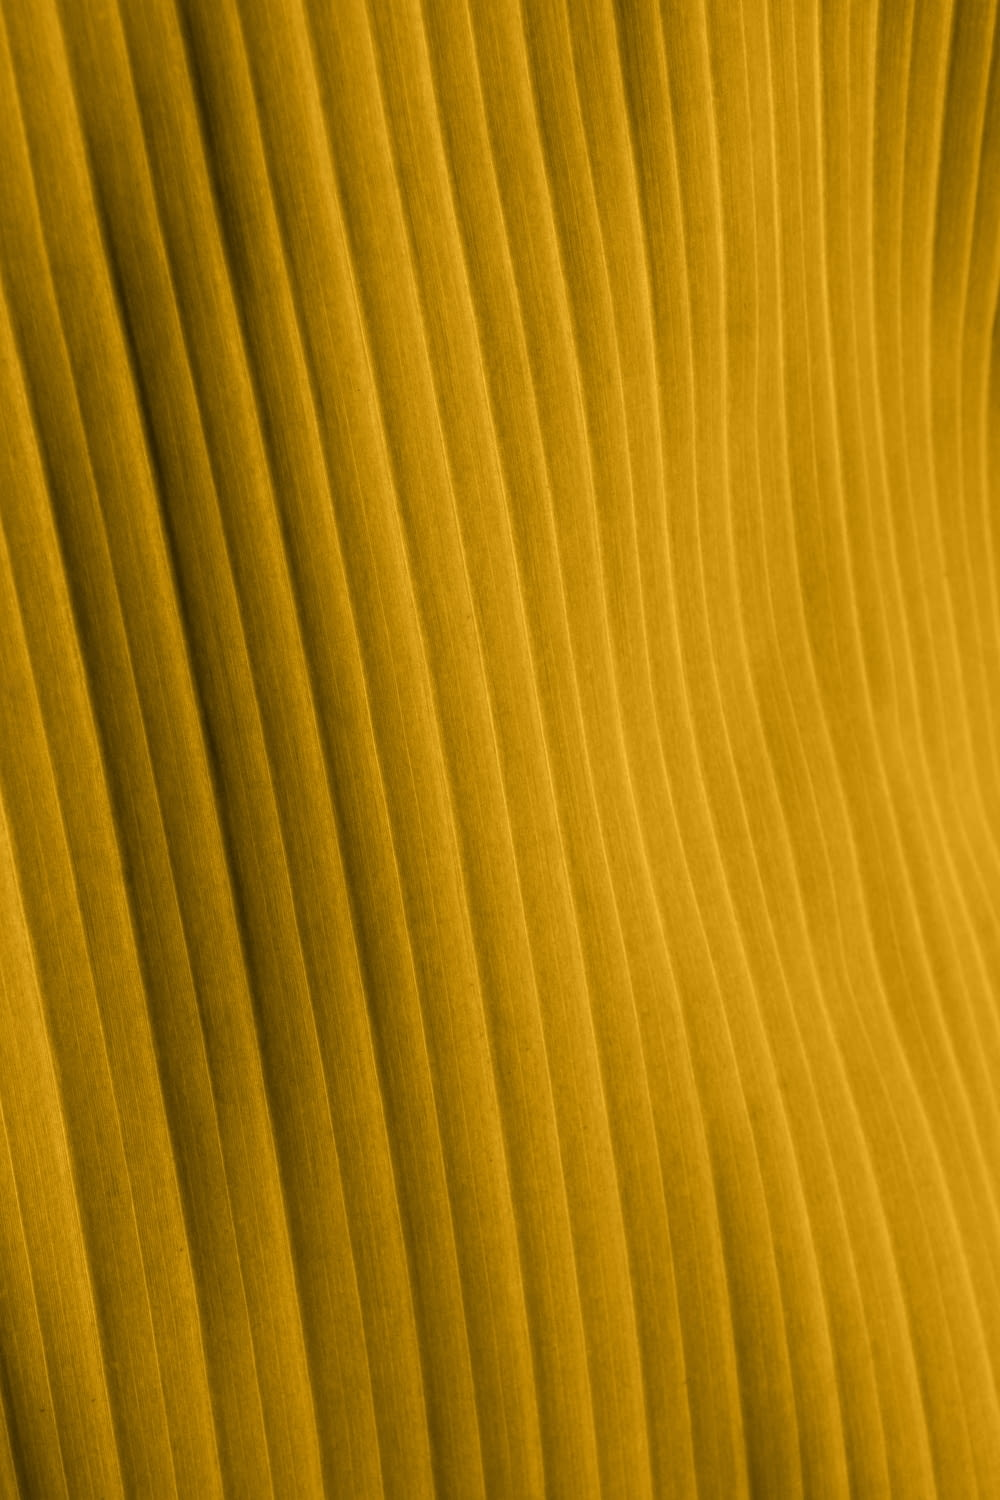 yellow and white striped textile